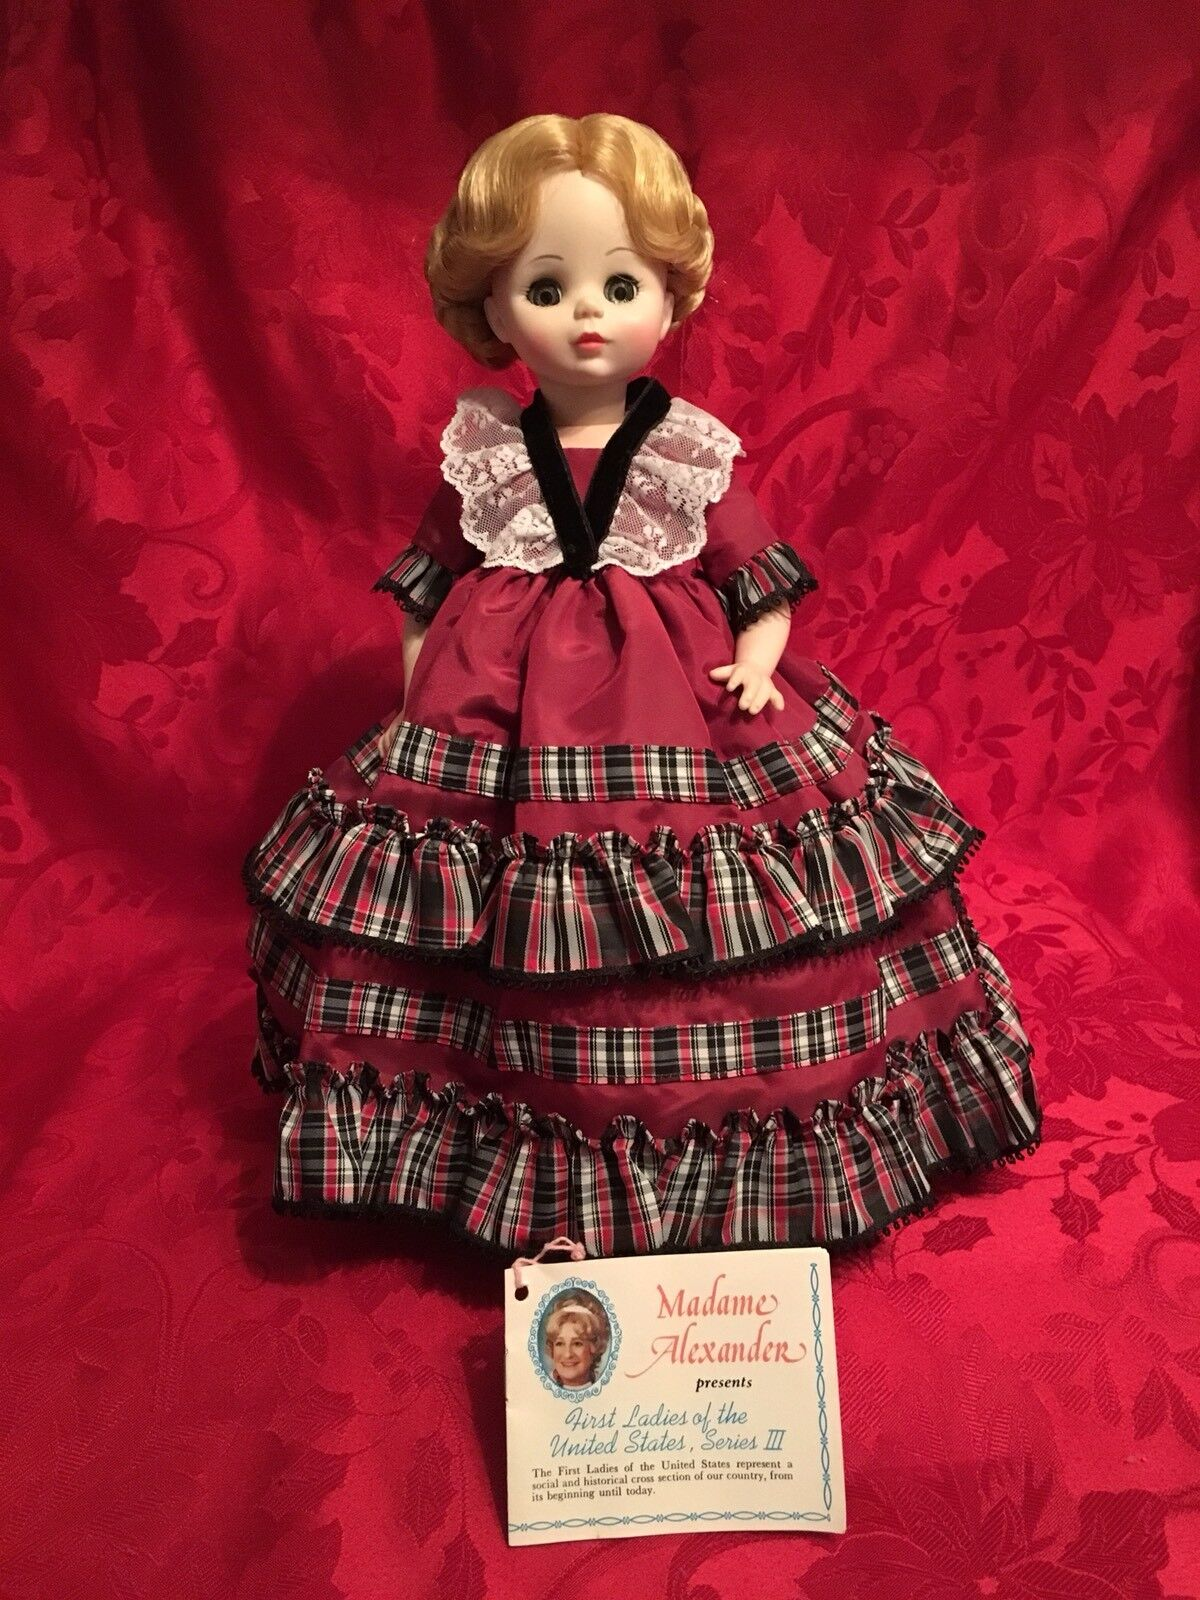 Madame Alexander Doll First Ladies Series II Betty Taylor Bliss